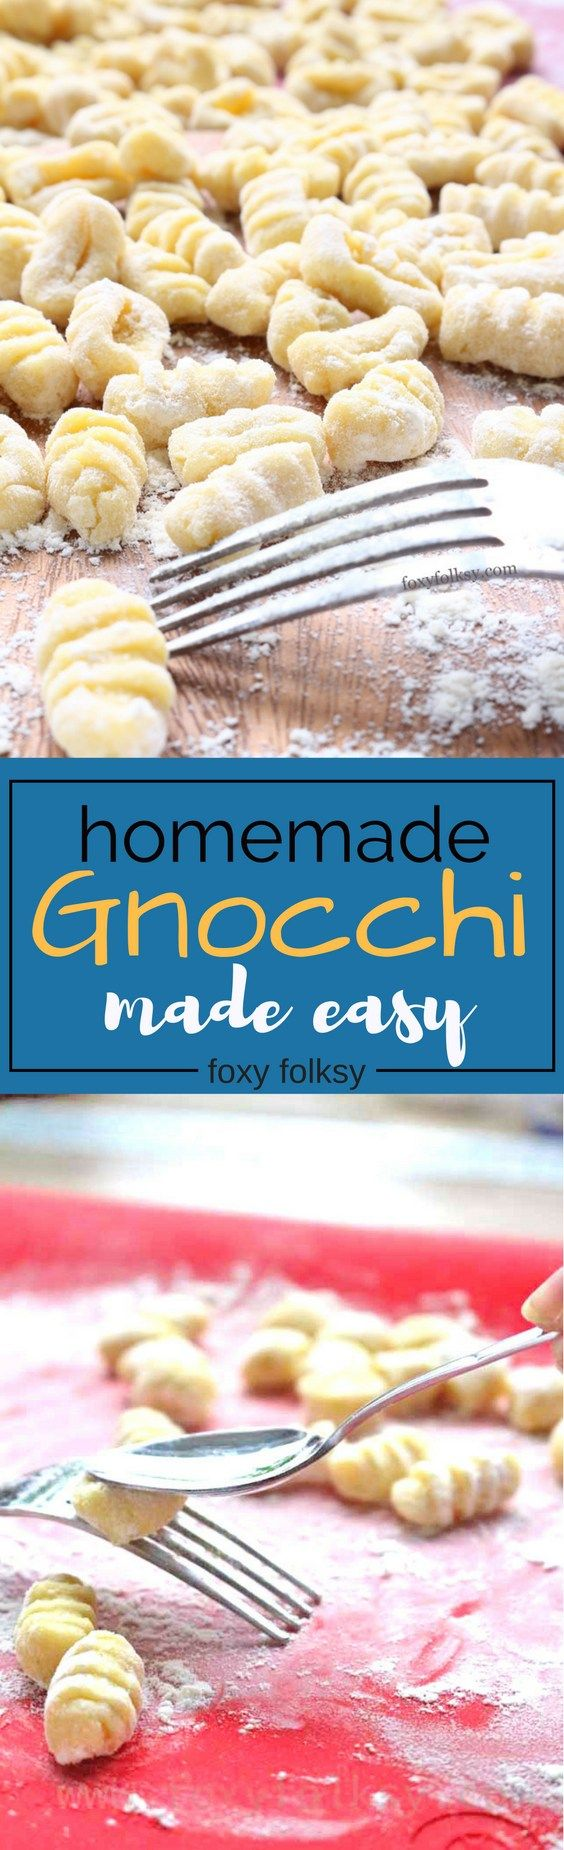 Learn how to make Gnocchi the fast and easy way.   www.foxyfolksy.com